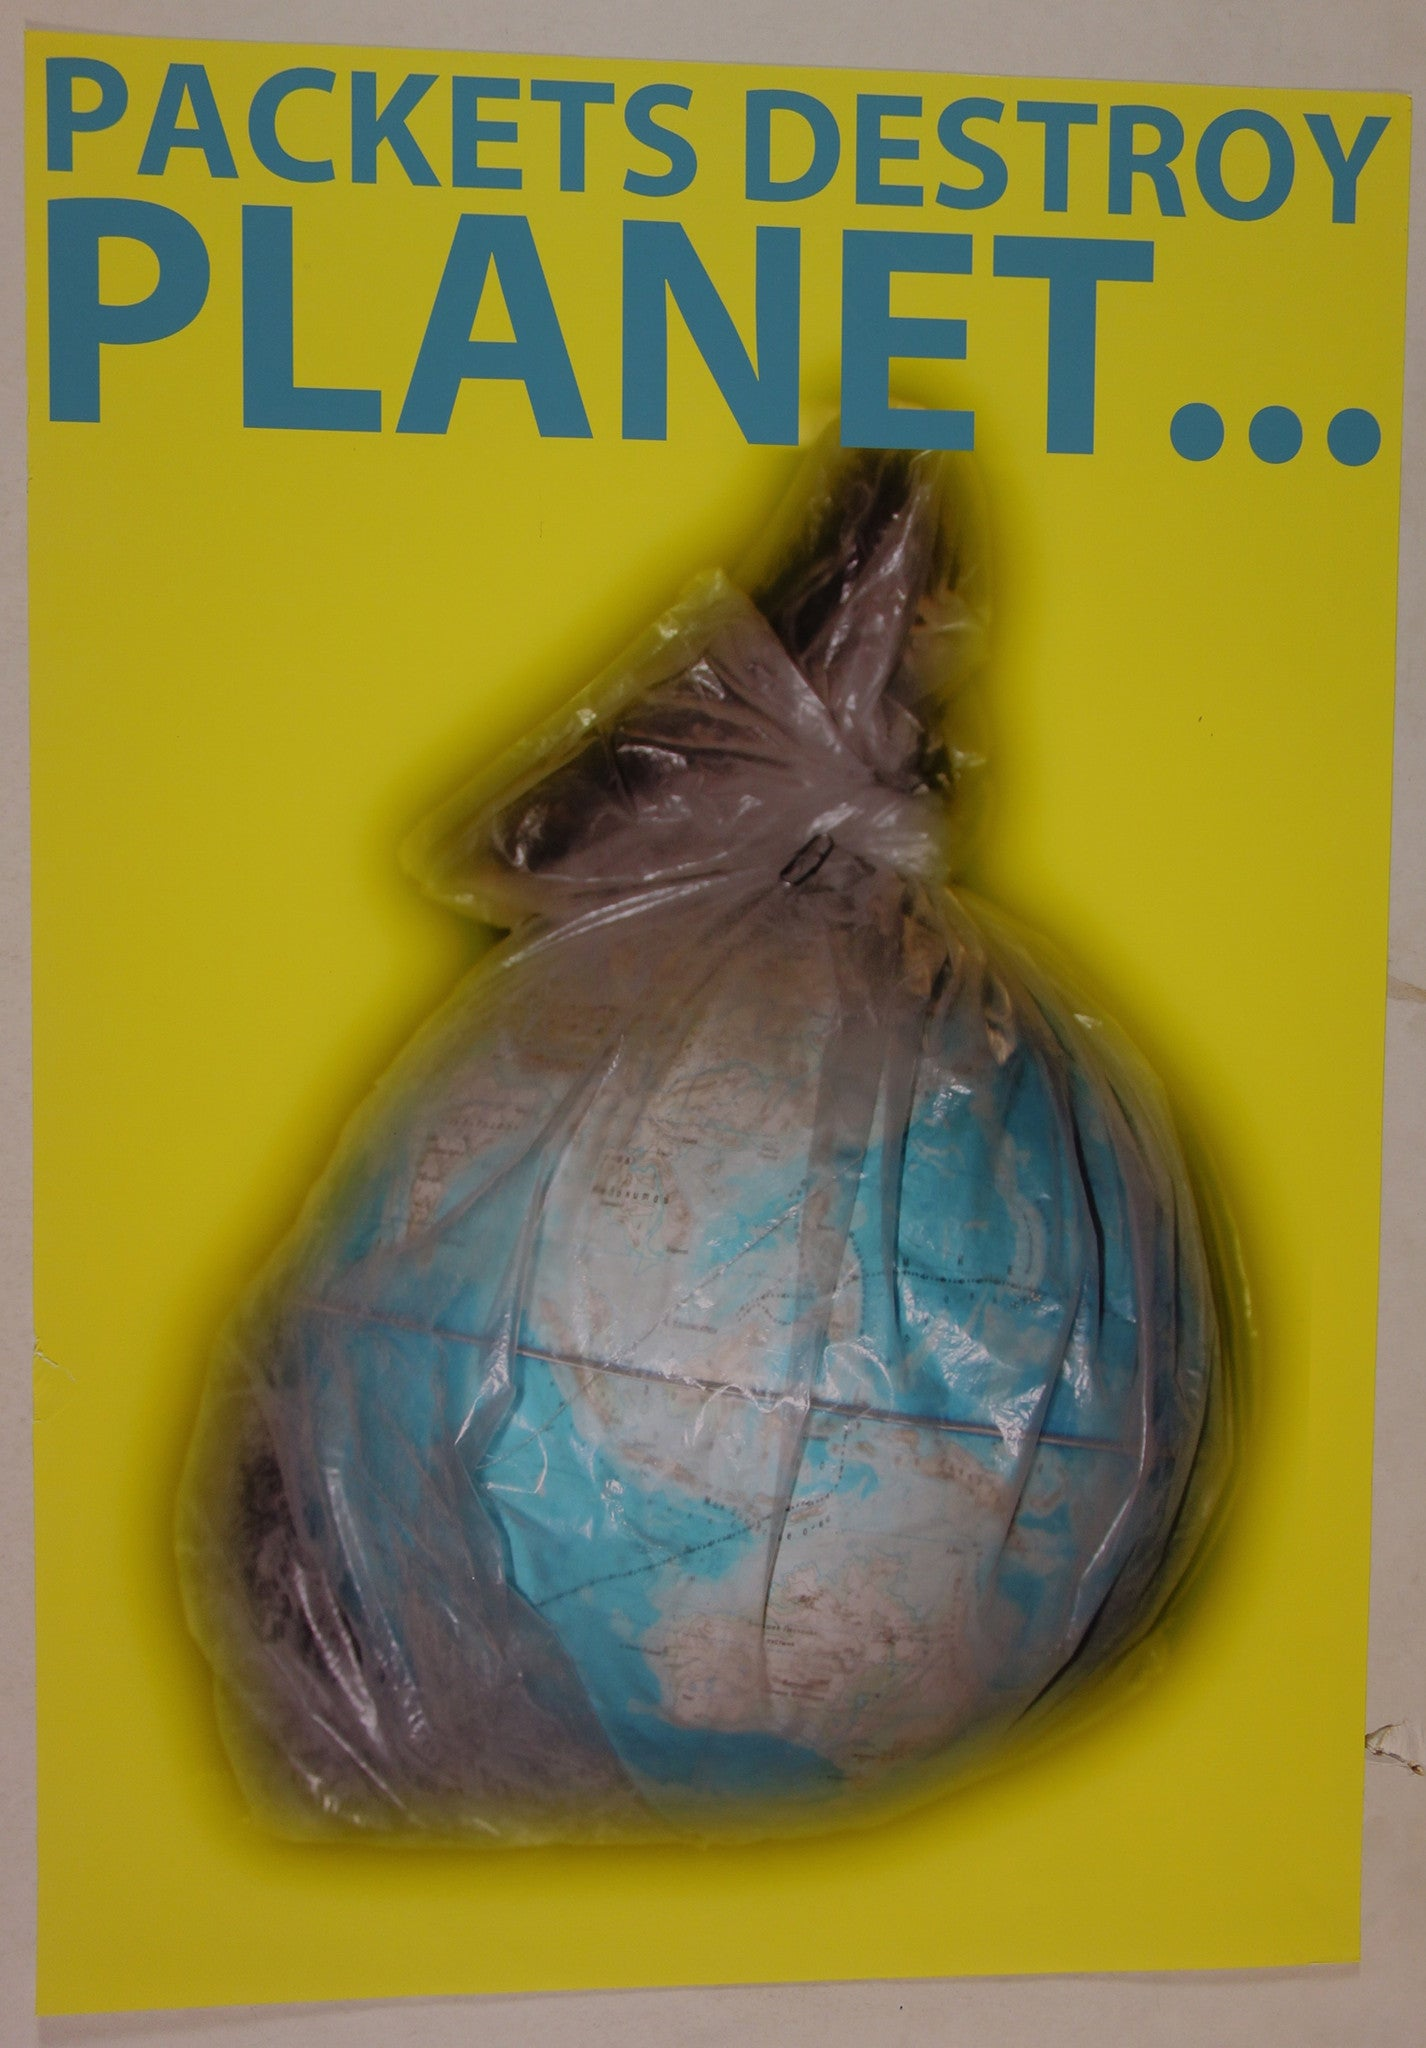 Packets Destroy Planet...